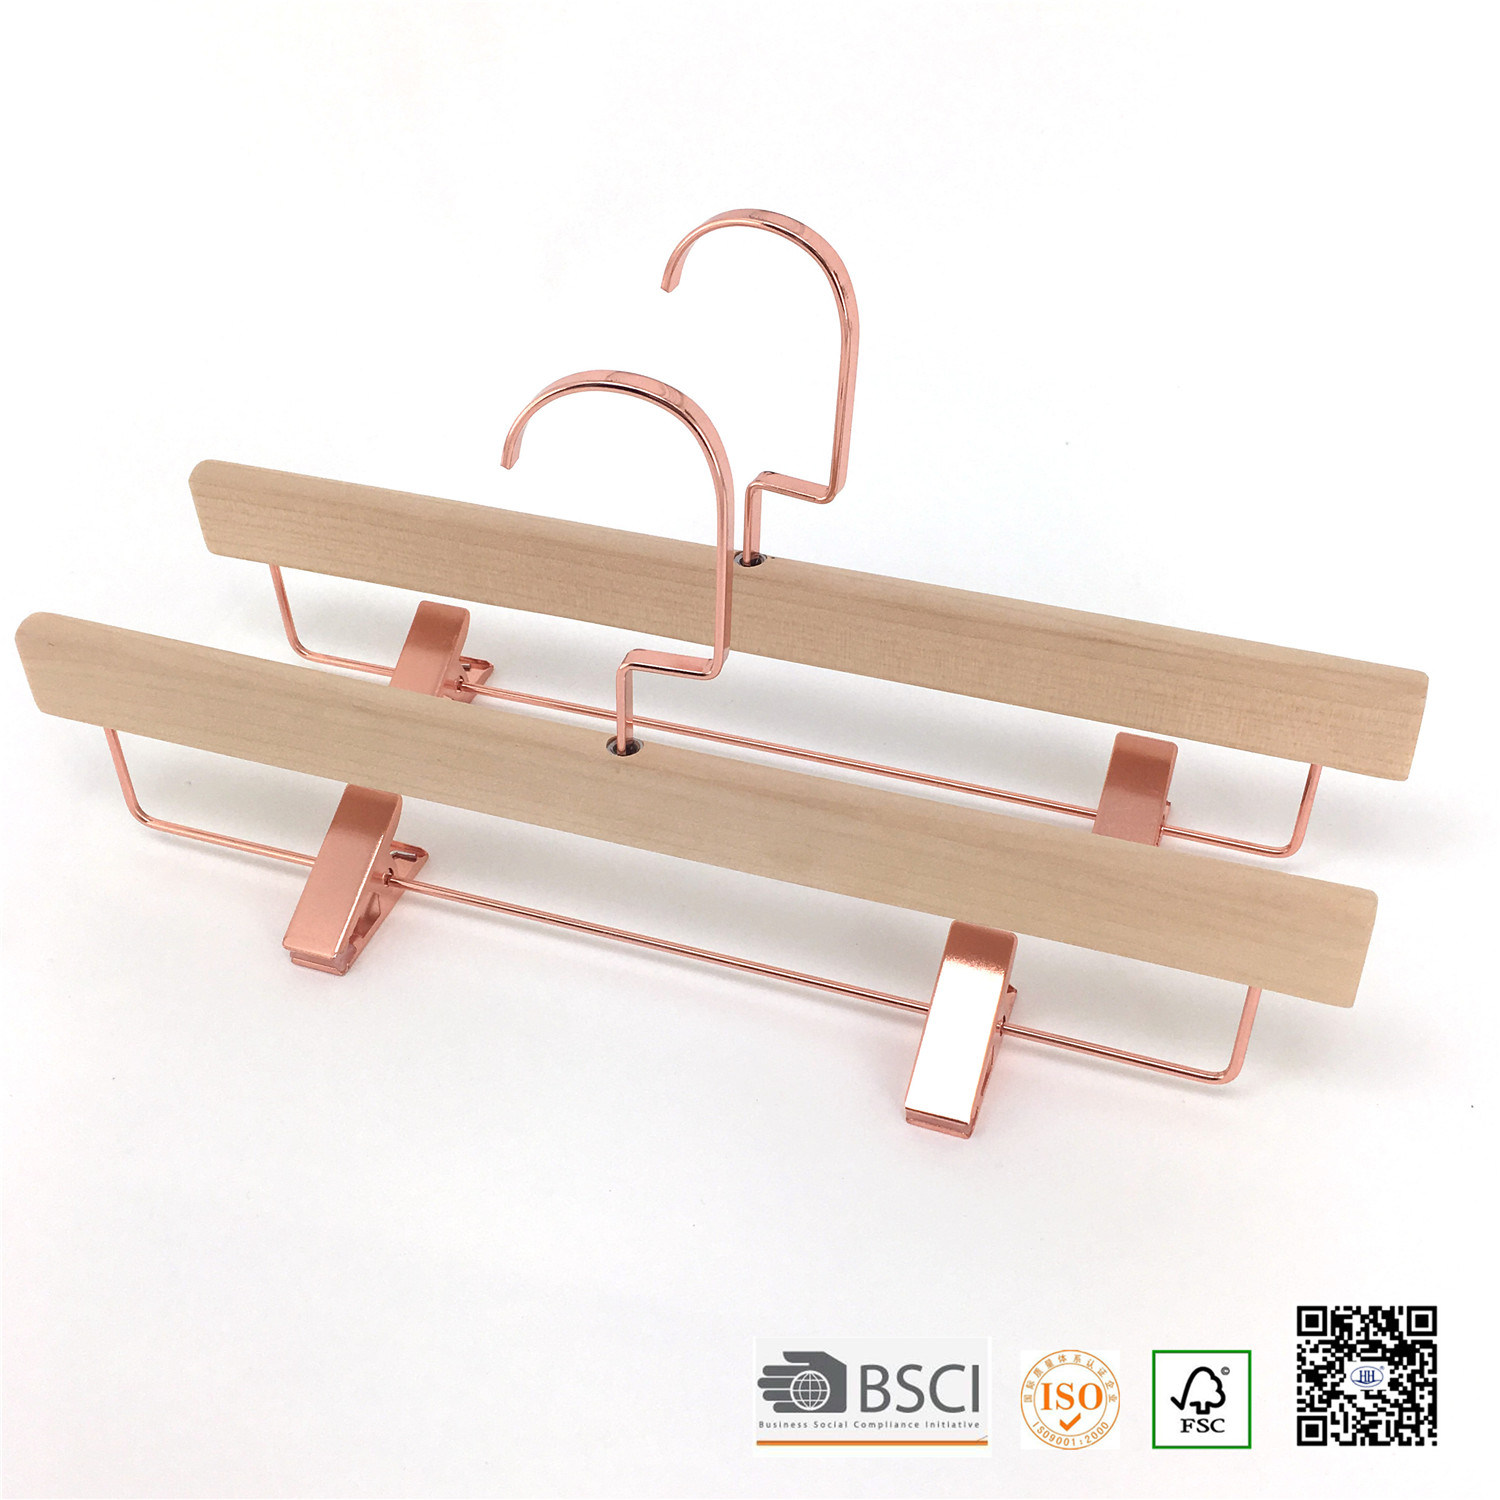 Eco Timber Gold Clips Bottom Custom Wooden Clothes Hanger Hangers for Jeans